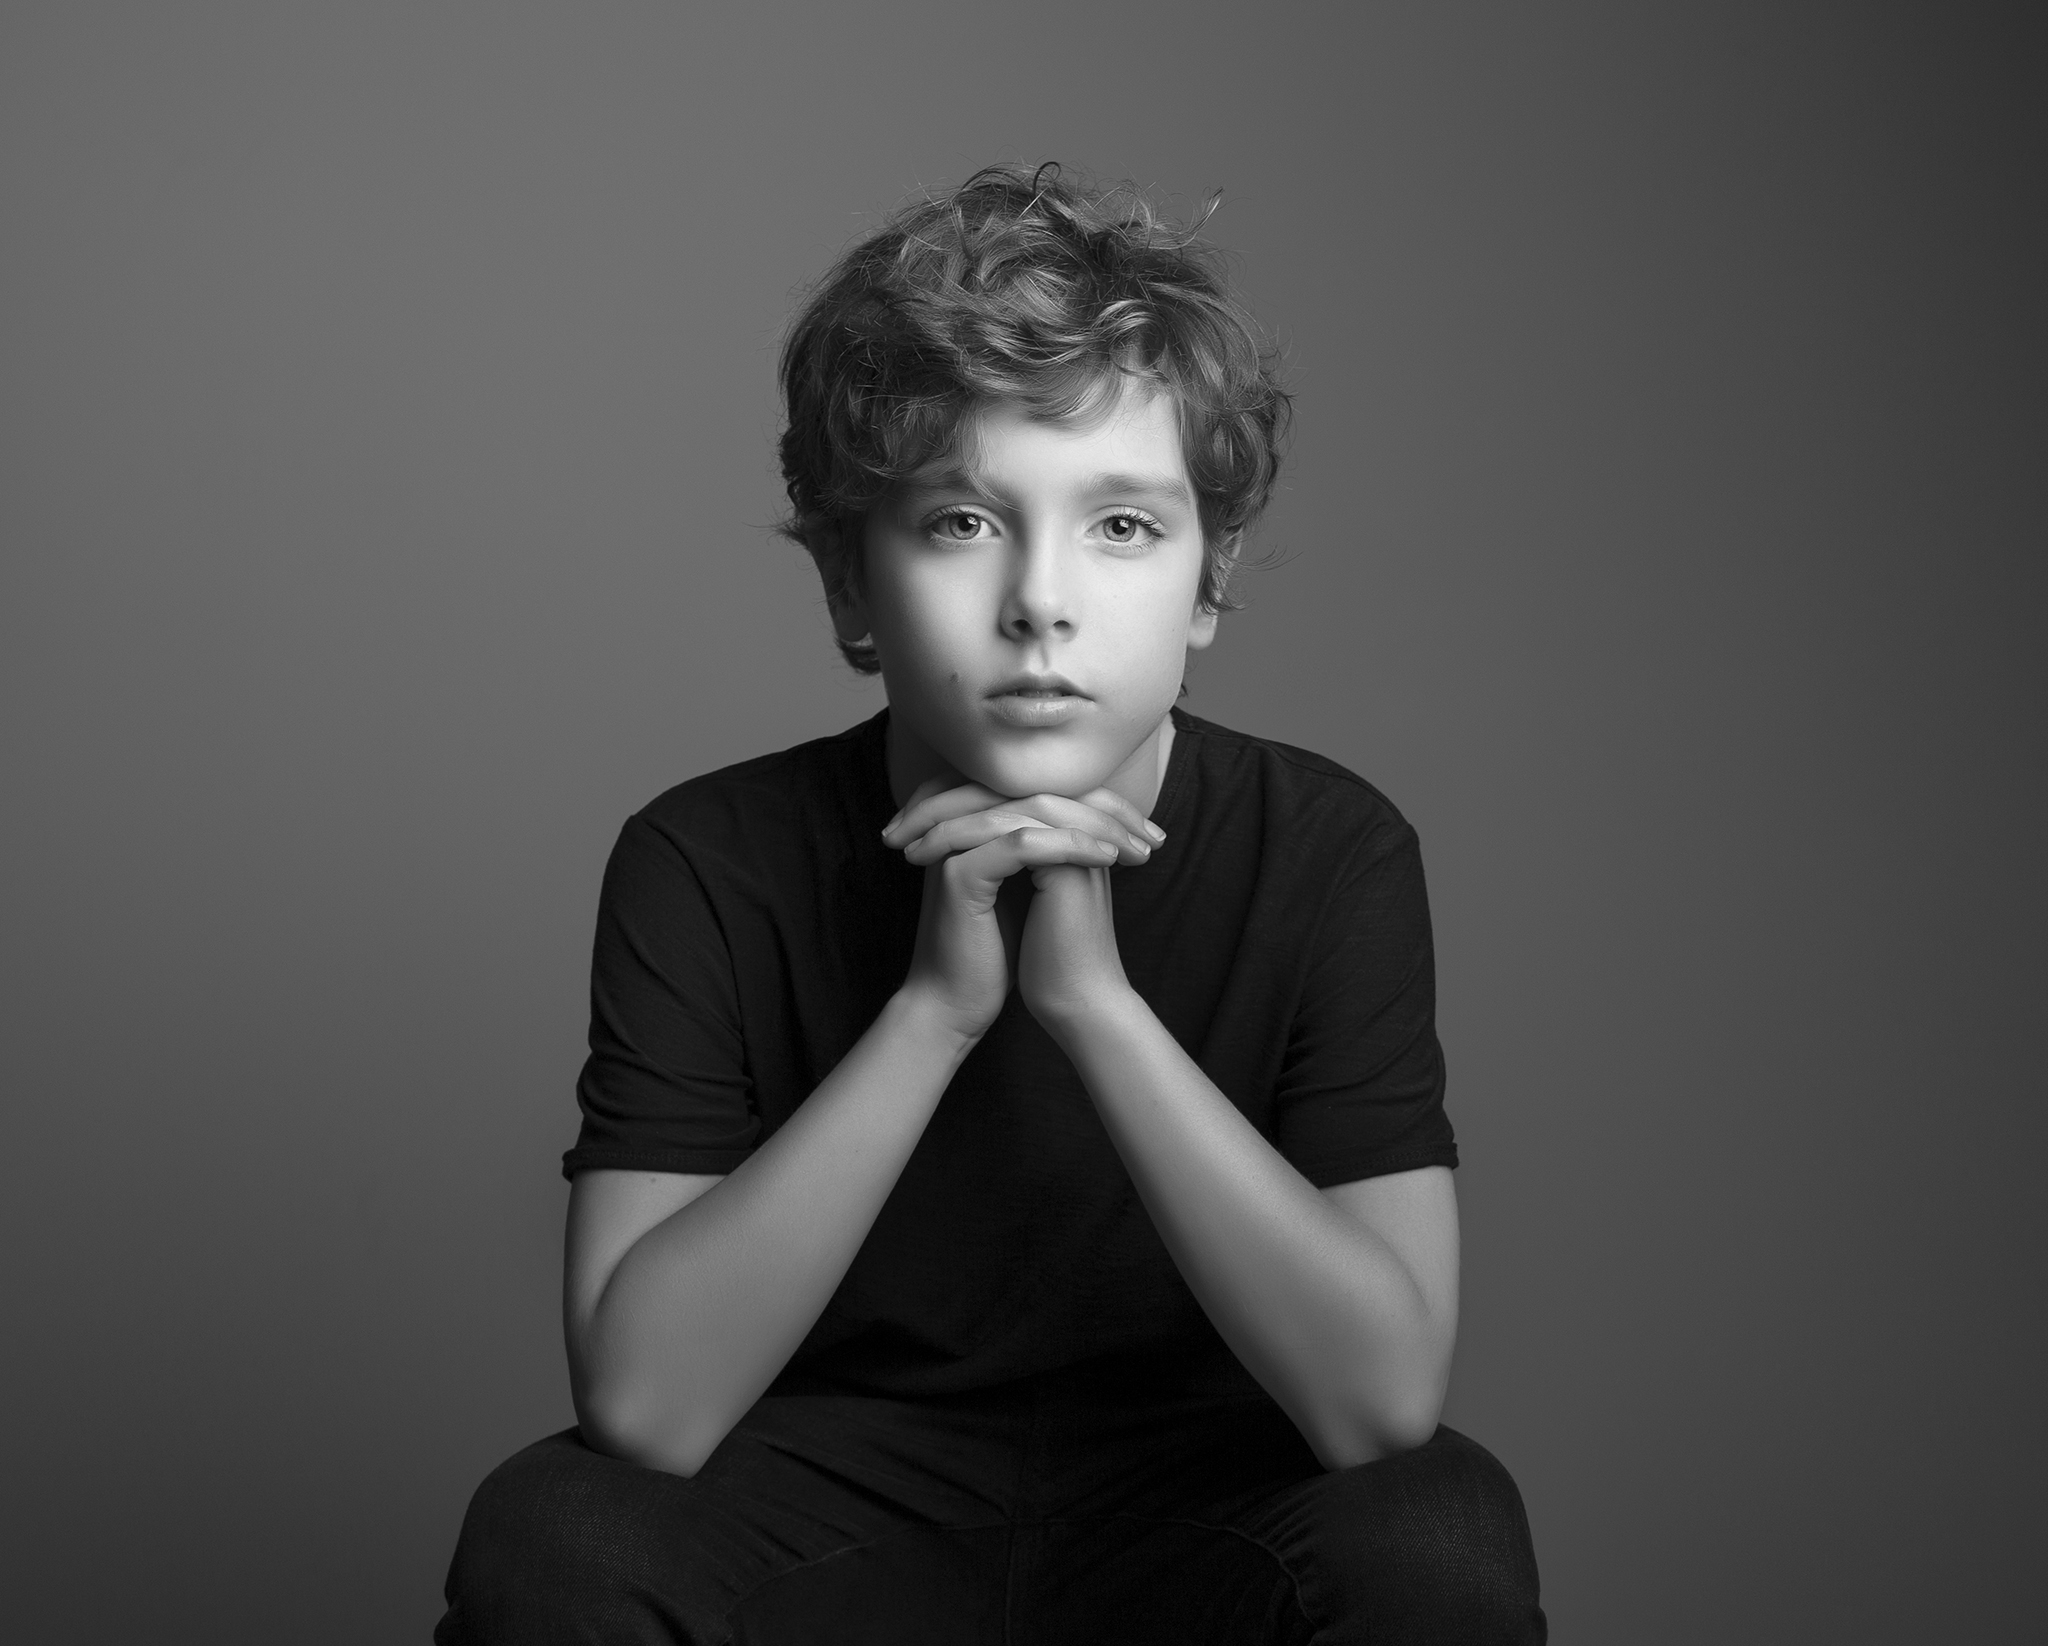 elizabethgphotography_childrens_fineart_kingslangley_hertfordshire_model_actor_updates_franek1.jpg